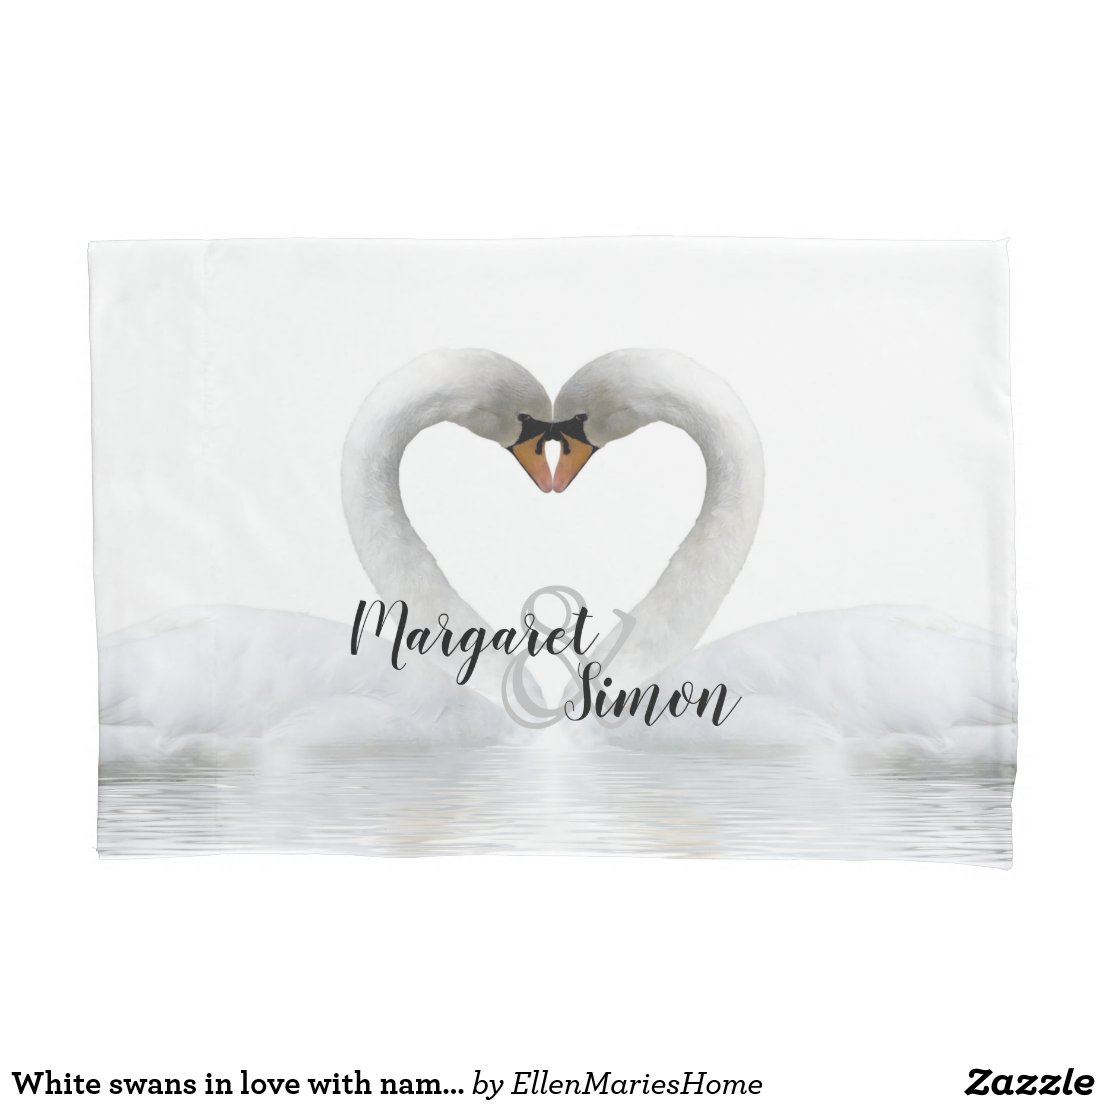 White swans in love with names wedding pillow case